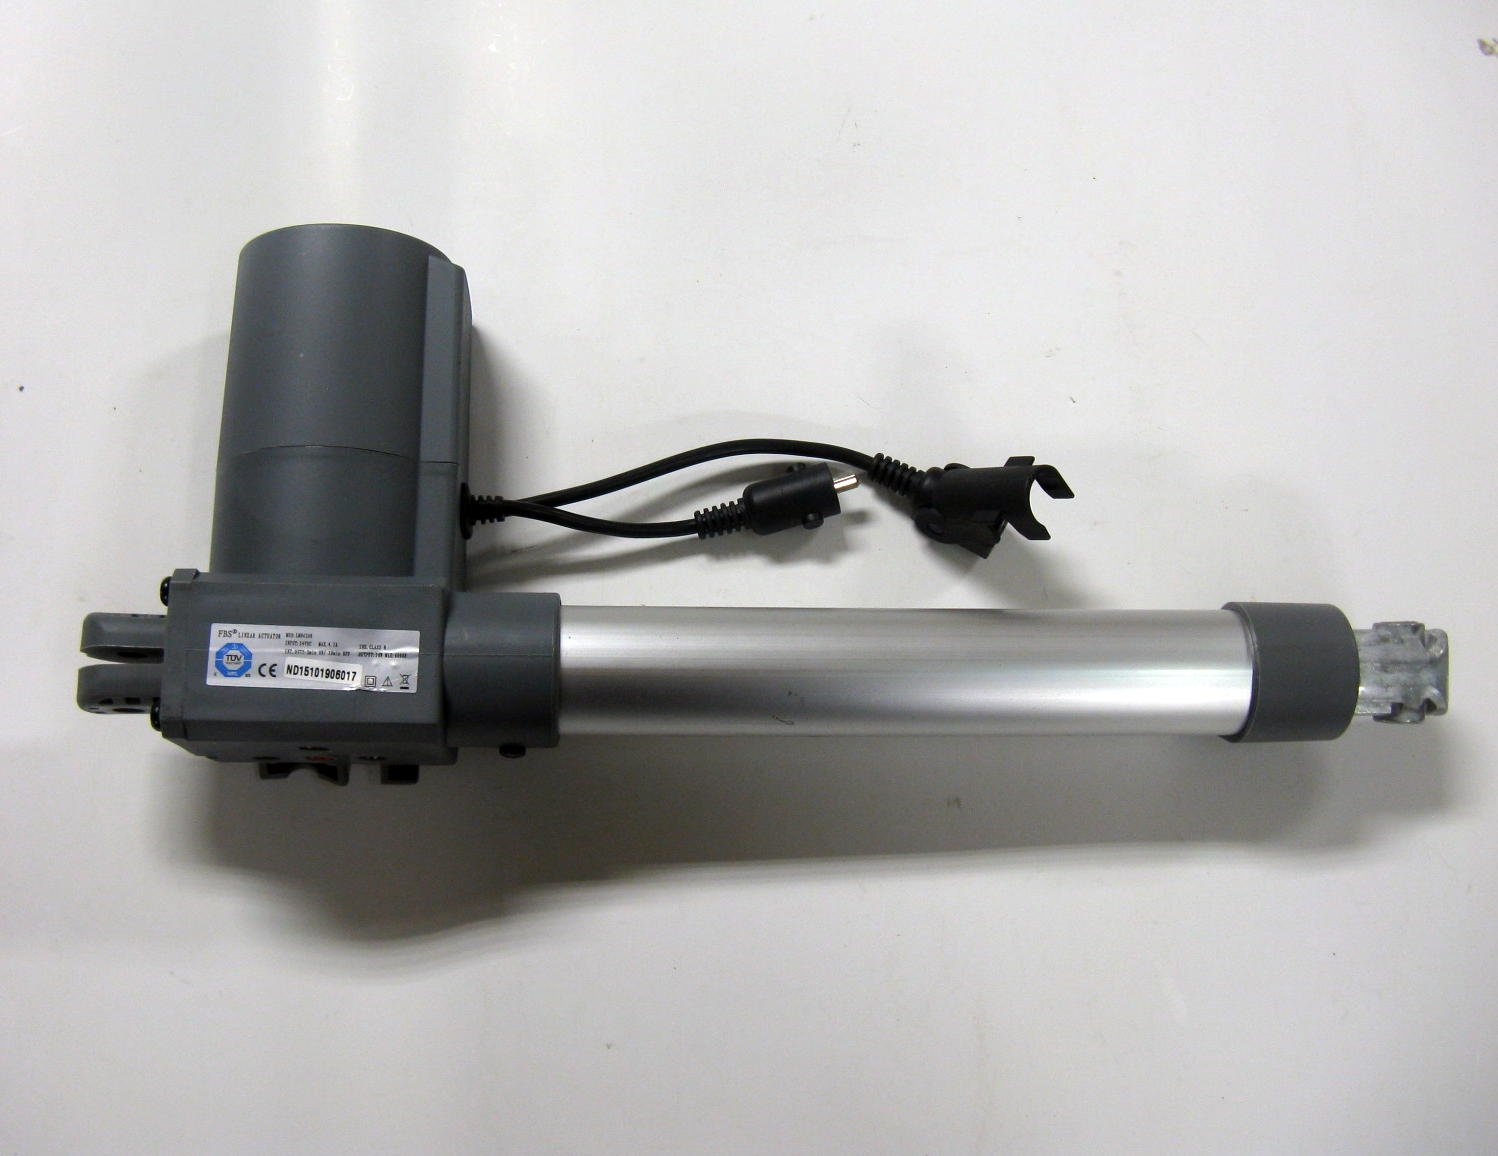 FBS Lift Chair Motor Actuator Assy for Single Motor Chairs LMD6208,Black/Silver